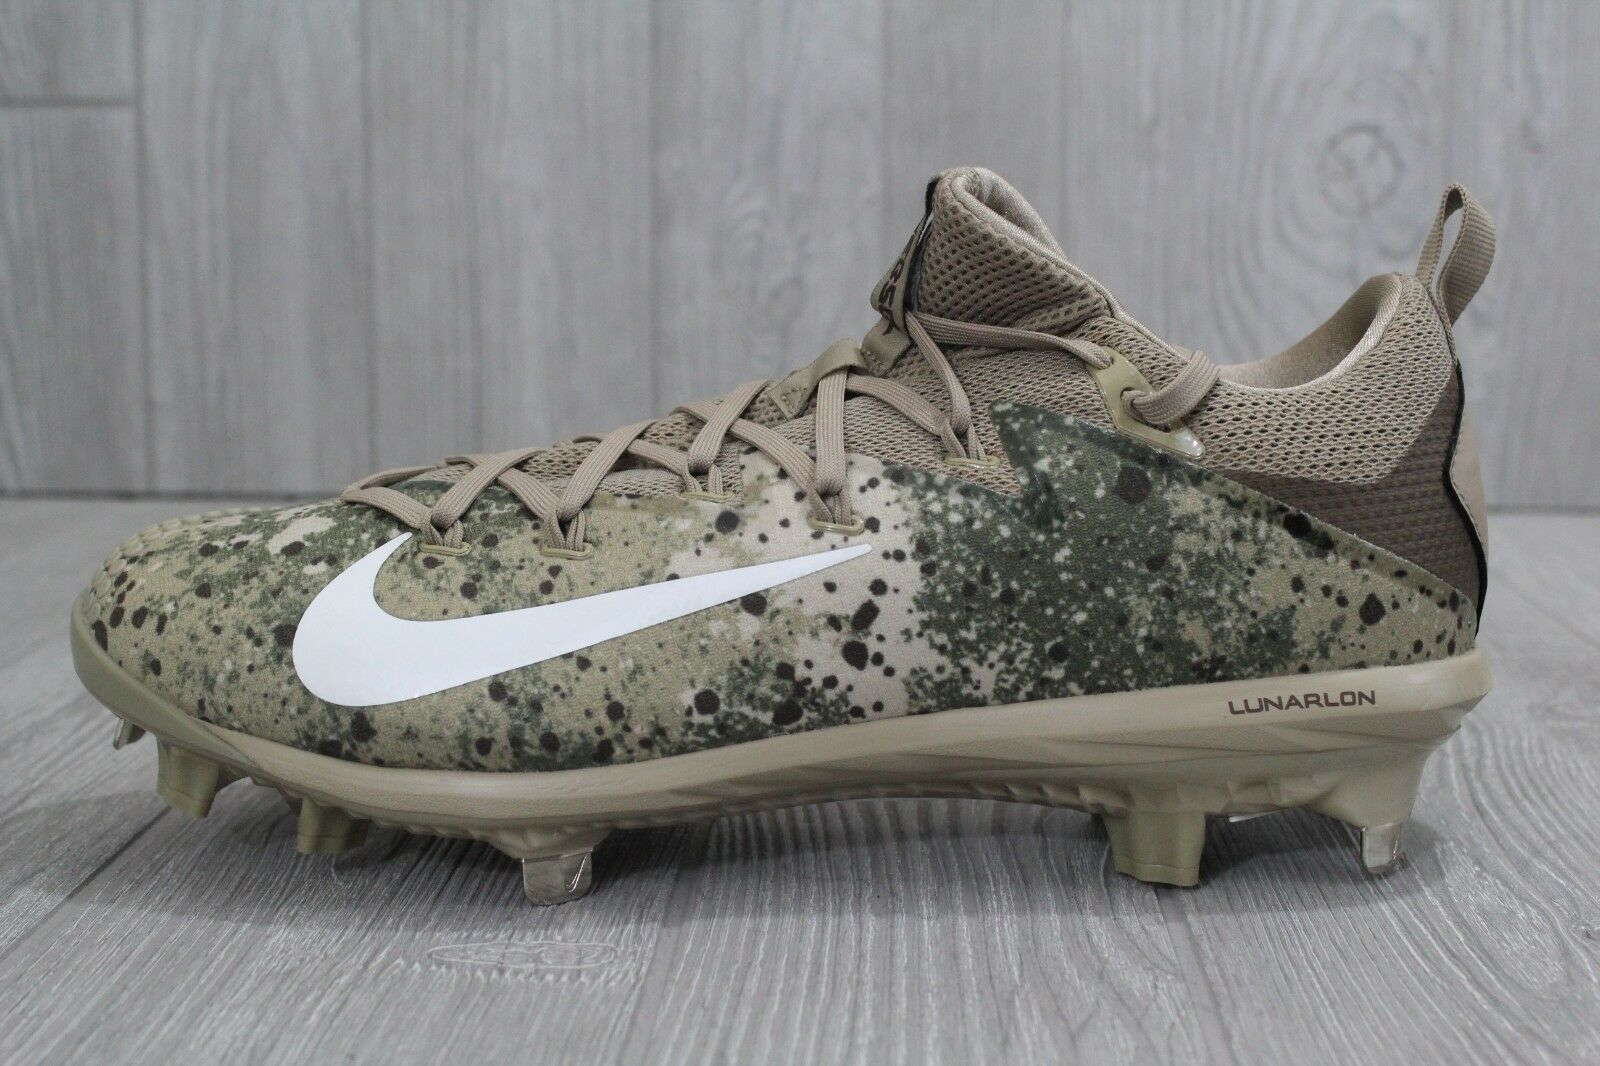 27 Nike Lunar Vapor Ultrafly Elite Baseball Cleats 852686-211 Khaki Camo Men 12 The most popular shoes for men and women